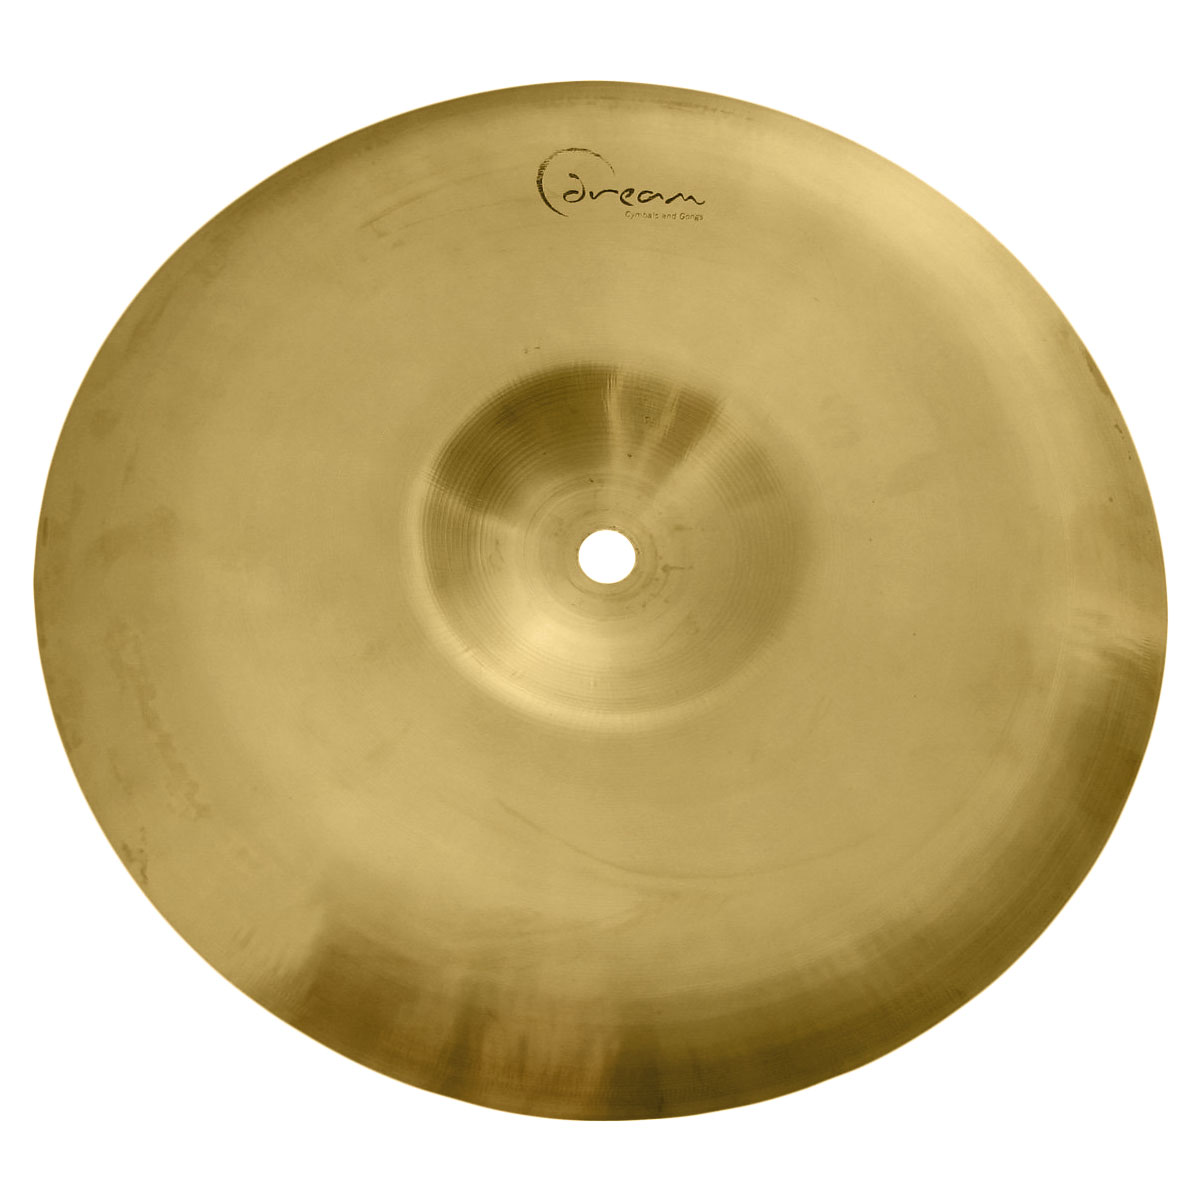 "Dream 10"" Pang China Cymbal"